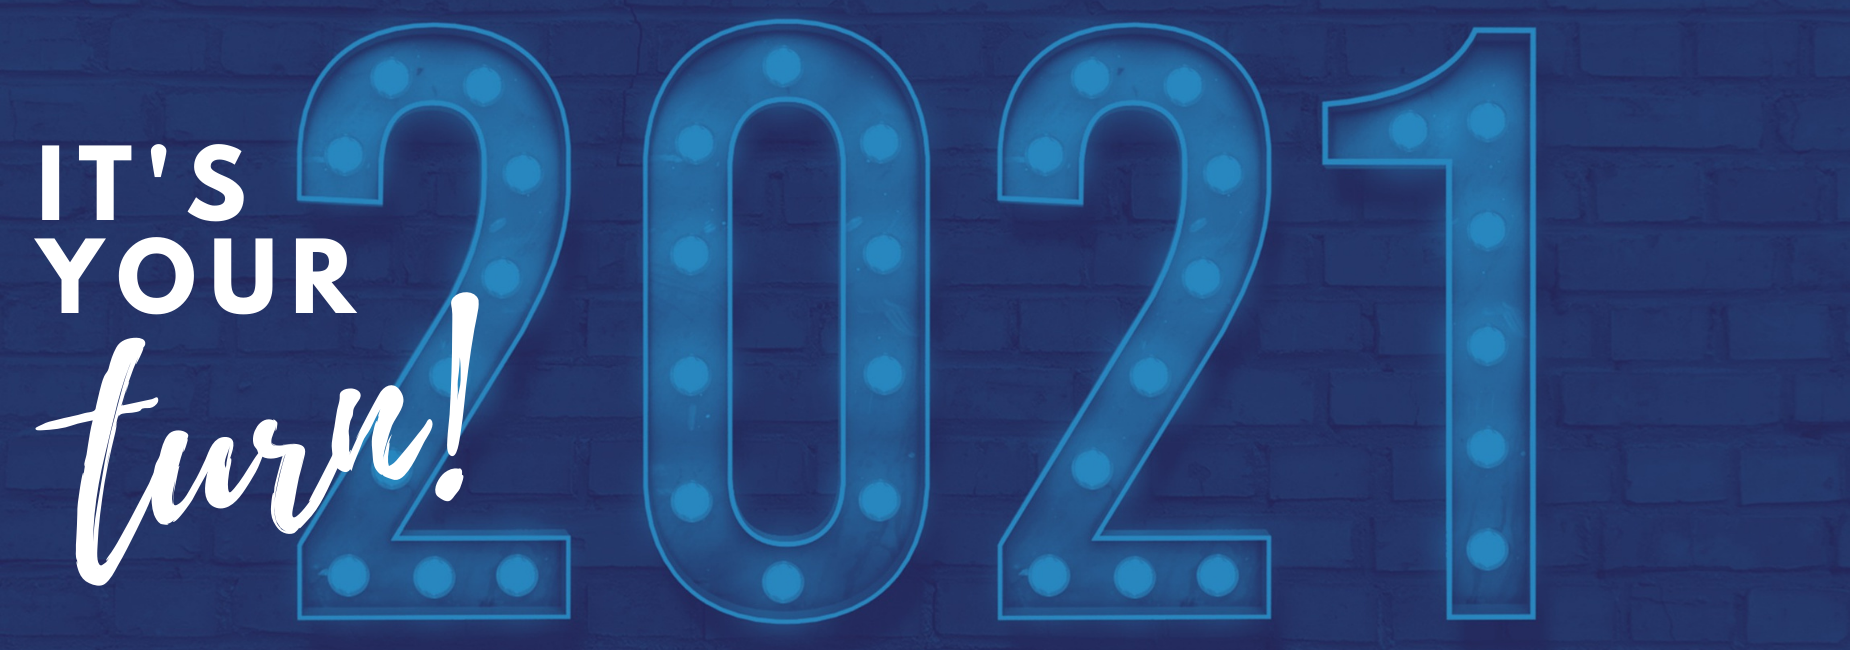 lighted numbers read it's your turn 2020